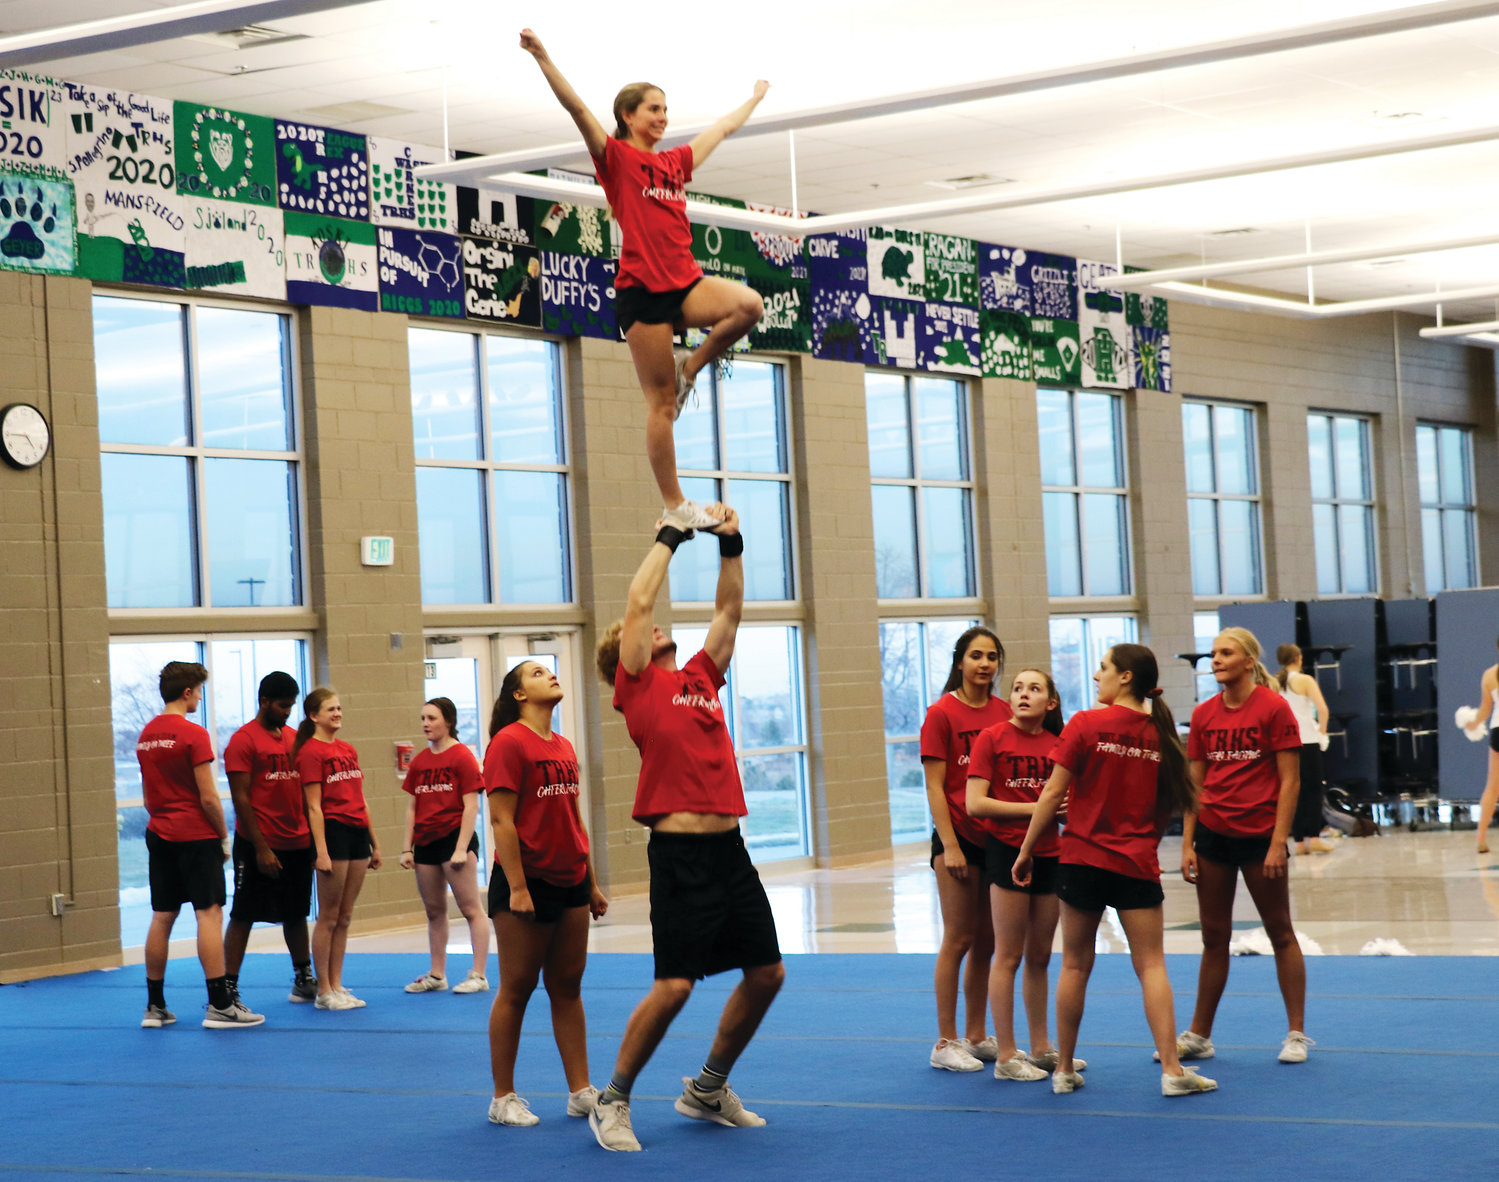 ThunderRidge High School's co-ed varsity cheer team prepares for the national championship coming up in early February. They hope to continue their winning streak. This season, for the first time in the school's history, the co-ed team won the state championship.